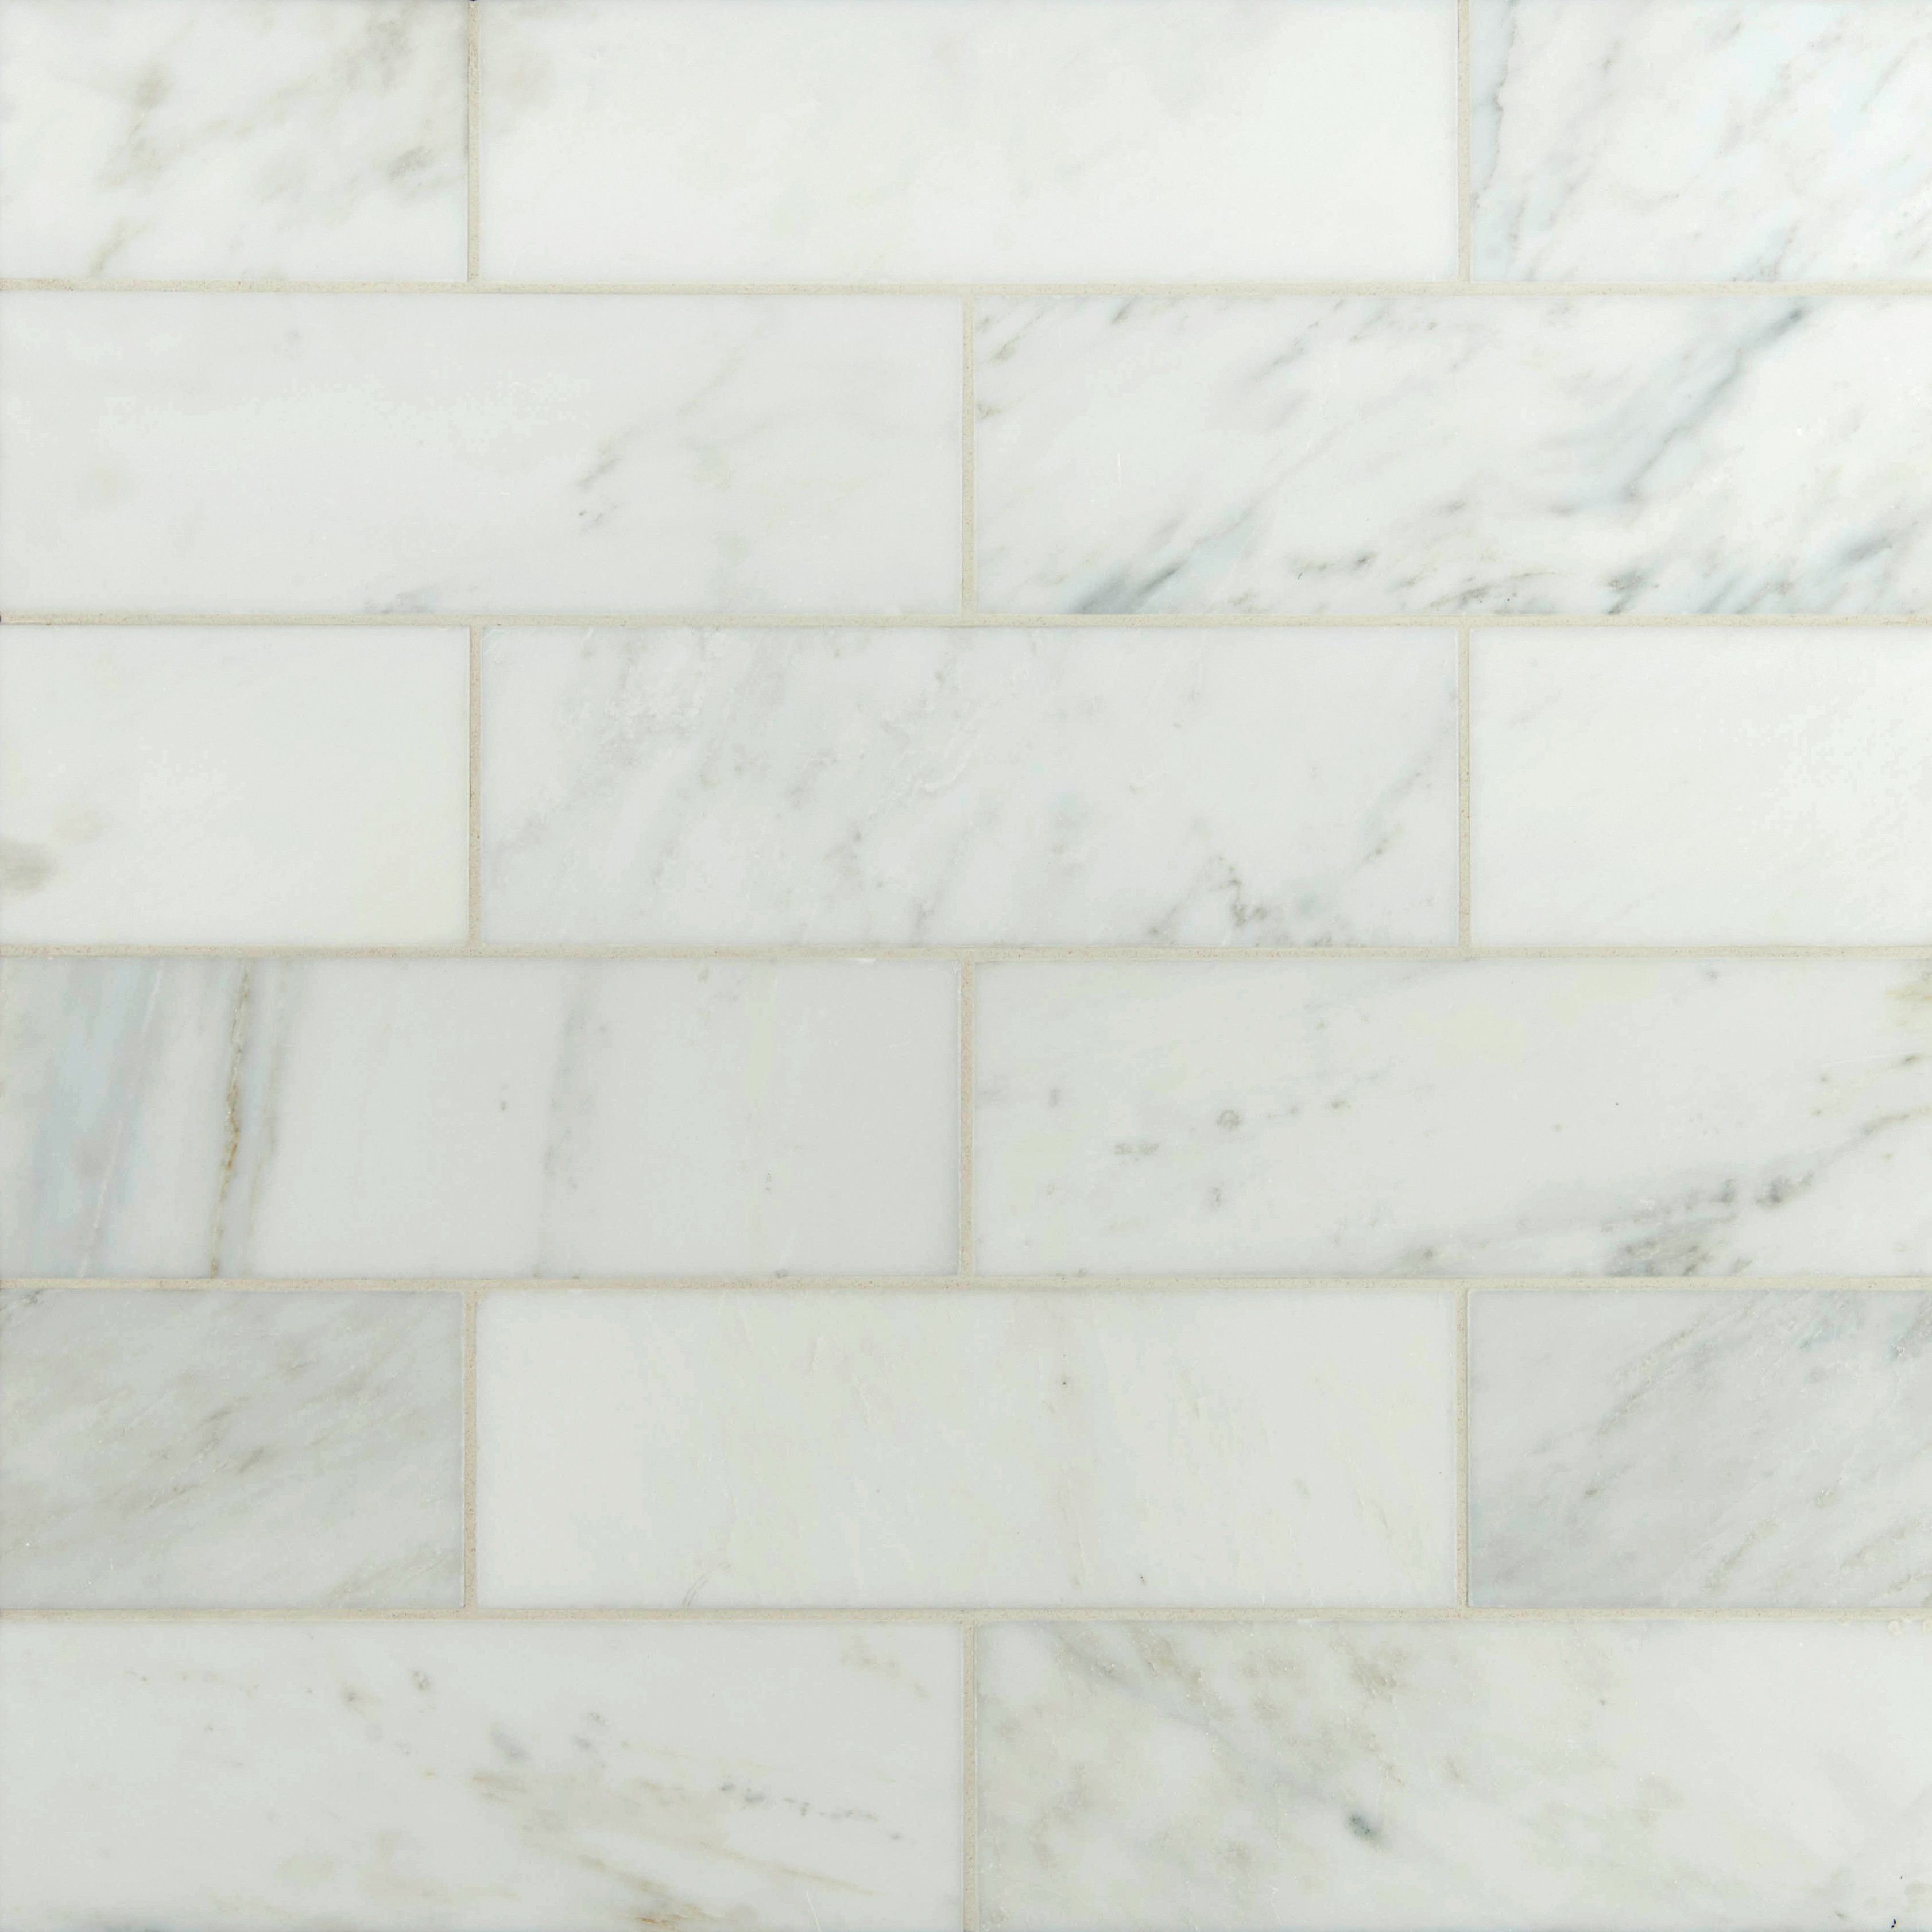 3 X 6 Polished Marble Subway Tile In Carrara White Polished Marble Tiles Marble Subway Tiles Marble Tile